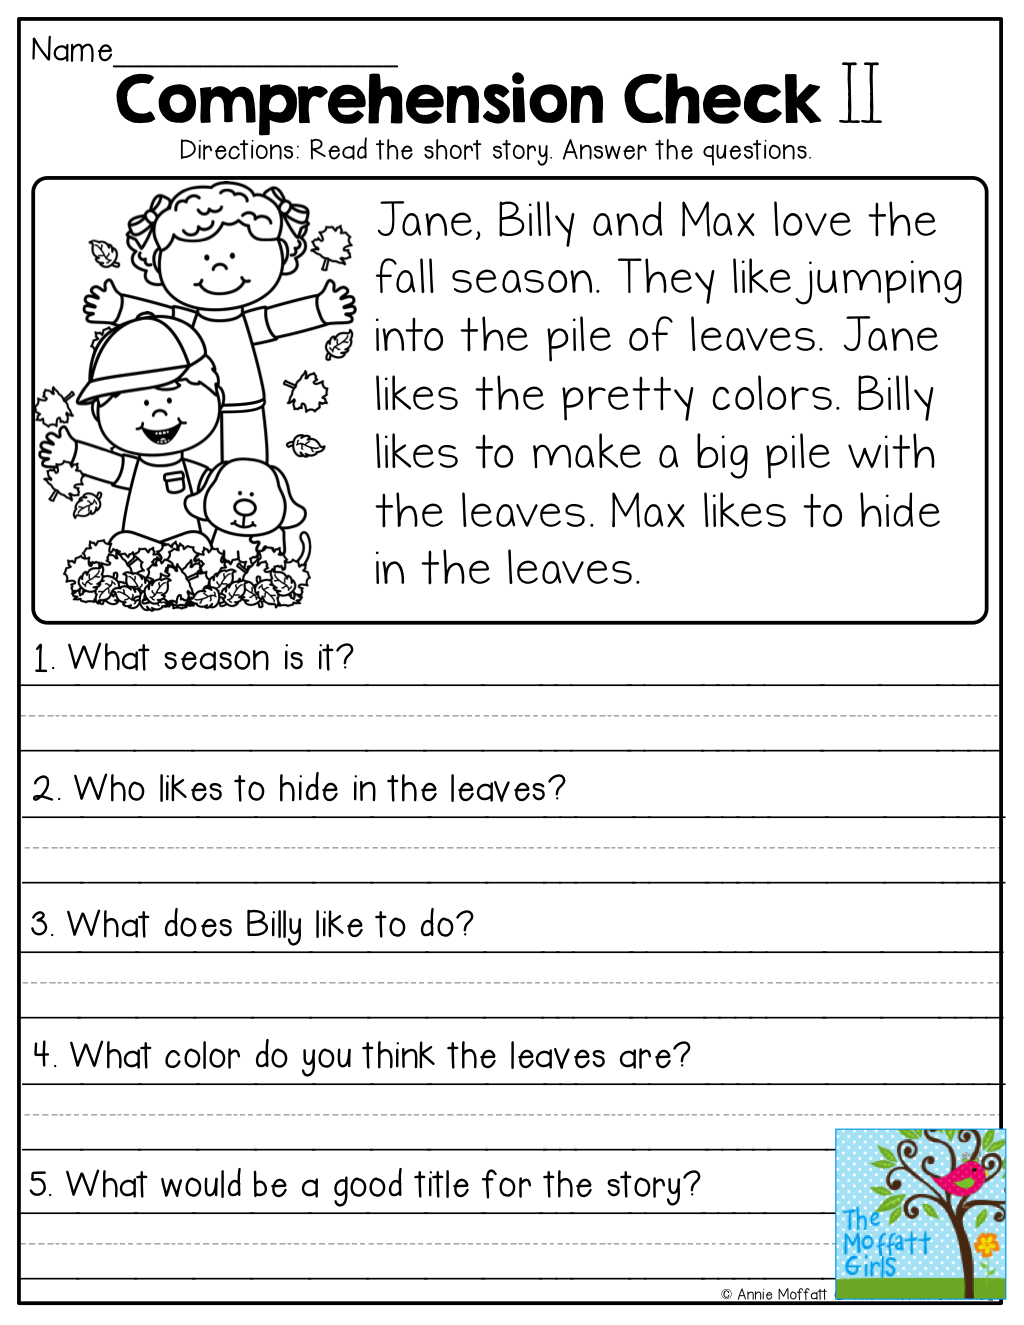 Comprehension Checks And So Many More Useful Printables! | Test Of - Free Printable Reading Comprehension Worksheets Grade 5